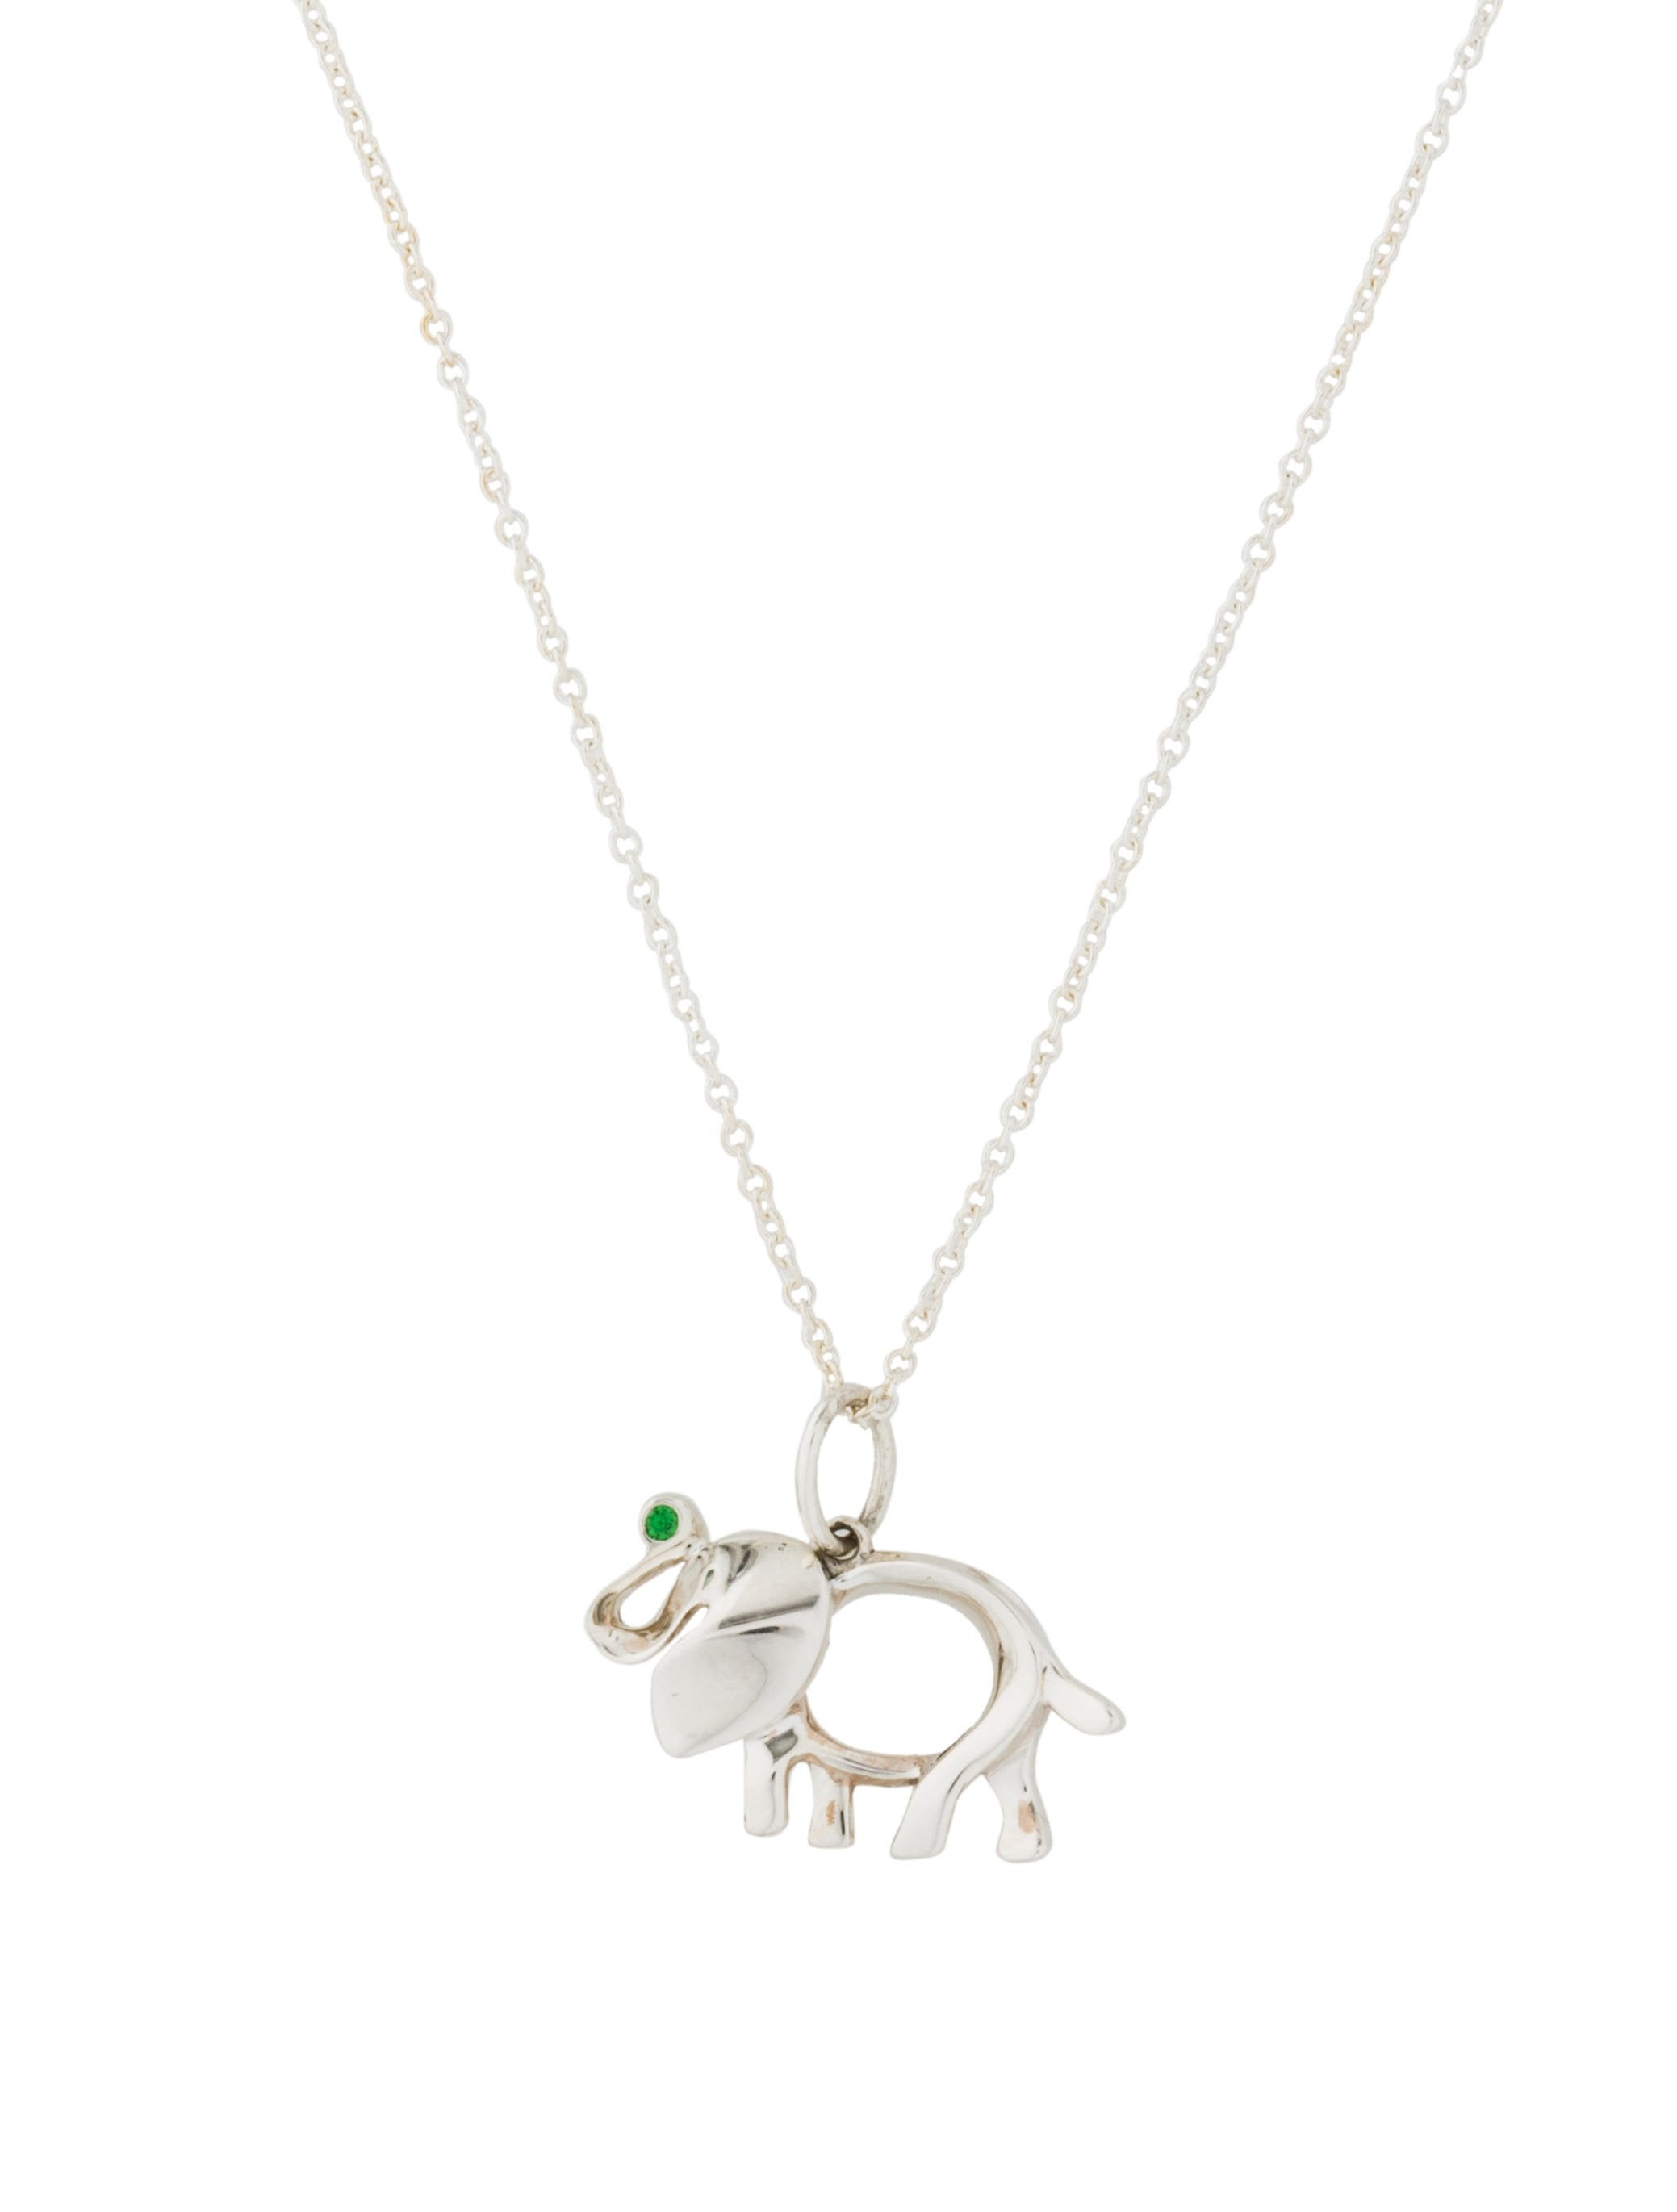 fdb3b4f83127 Tiffany   Co. Tsavorite Elephant Save The Wild Necklace - Necklaces ...